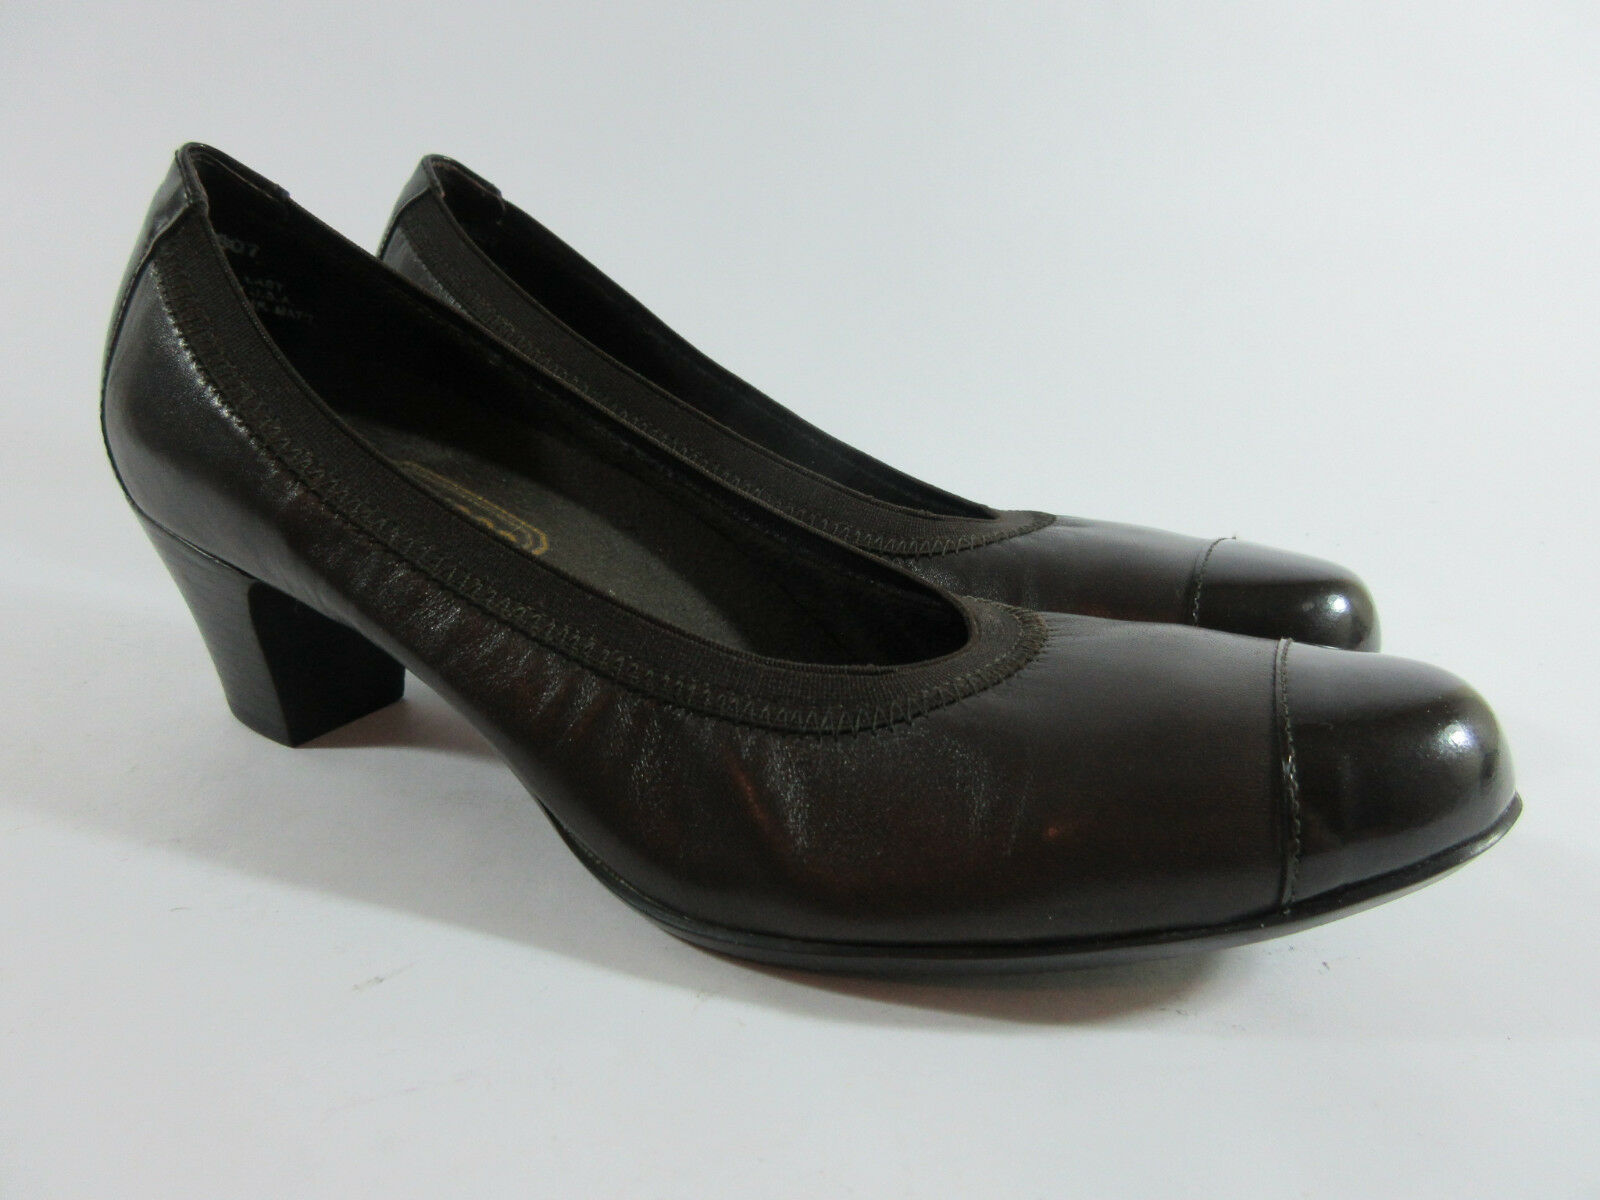 Munro American Odette Brown Patent Leather Cap Toe Stretch Pumps Womens Size 9 N